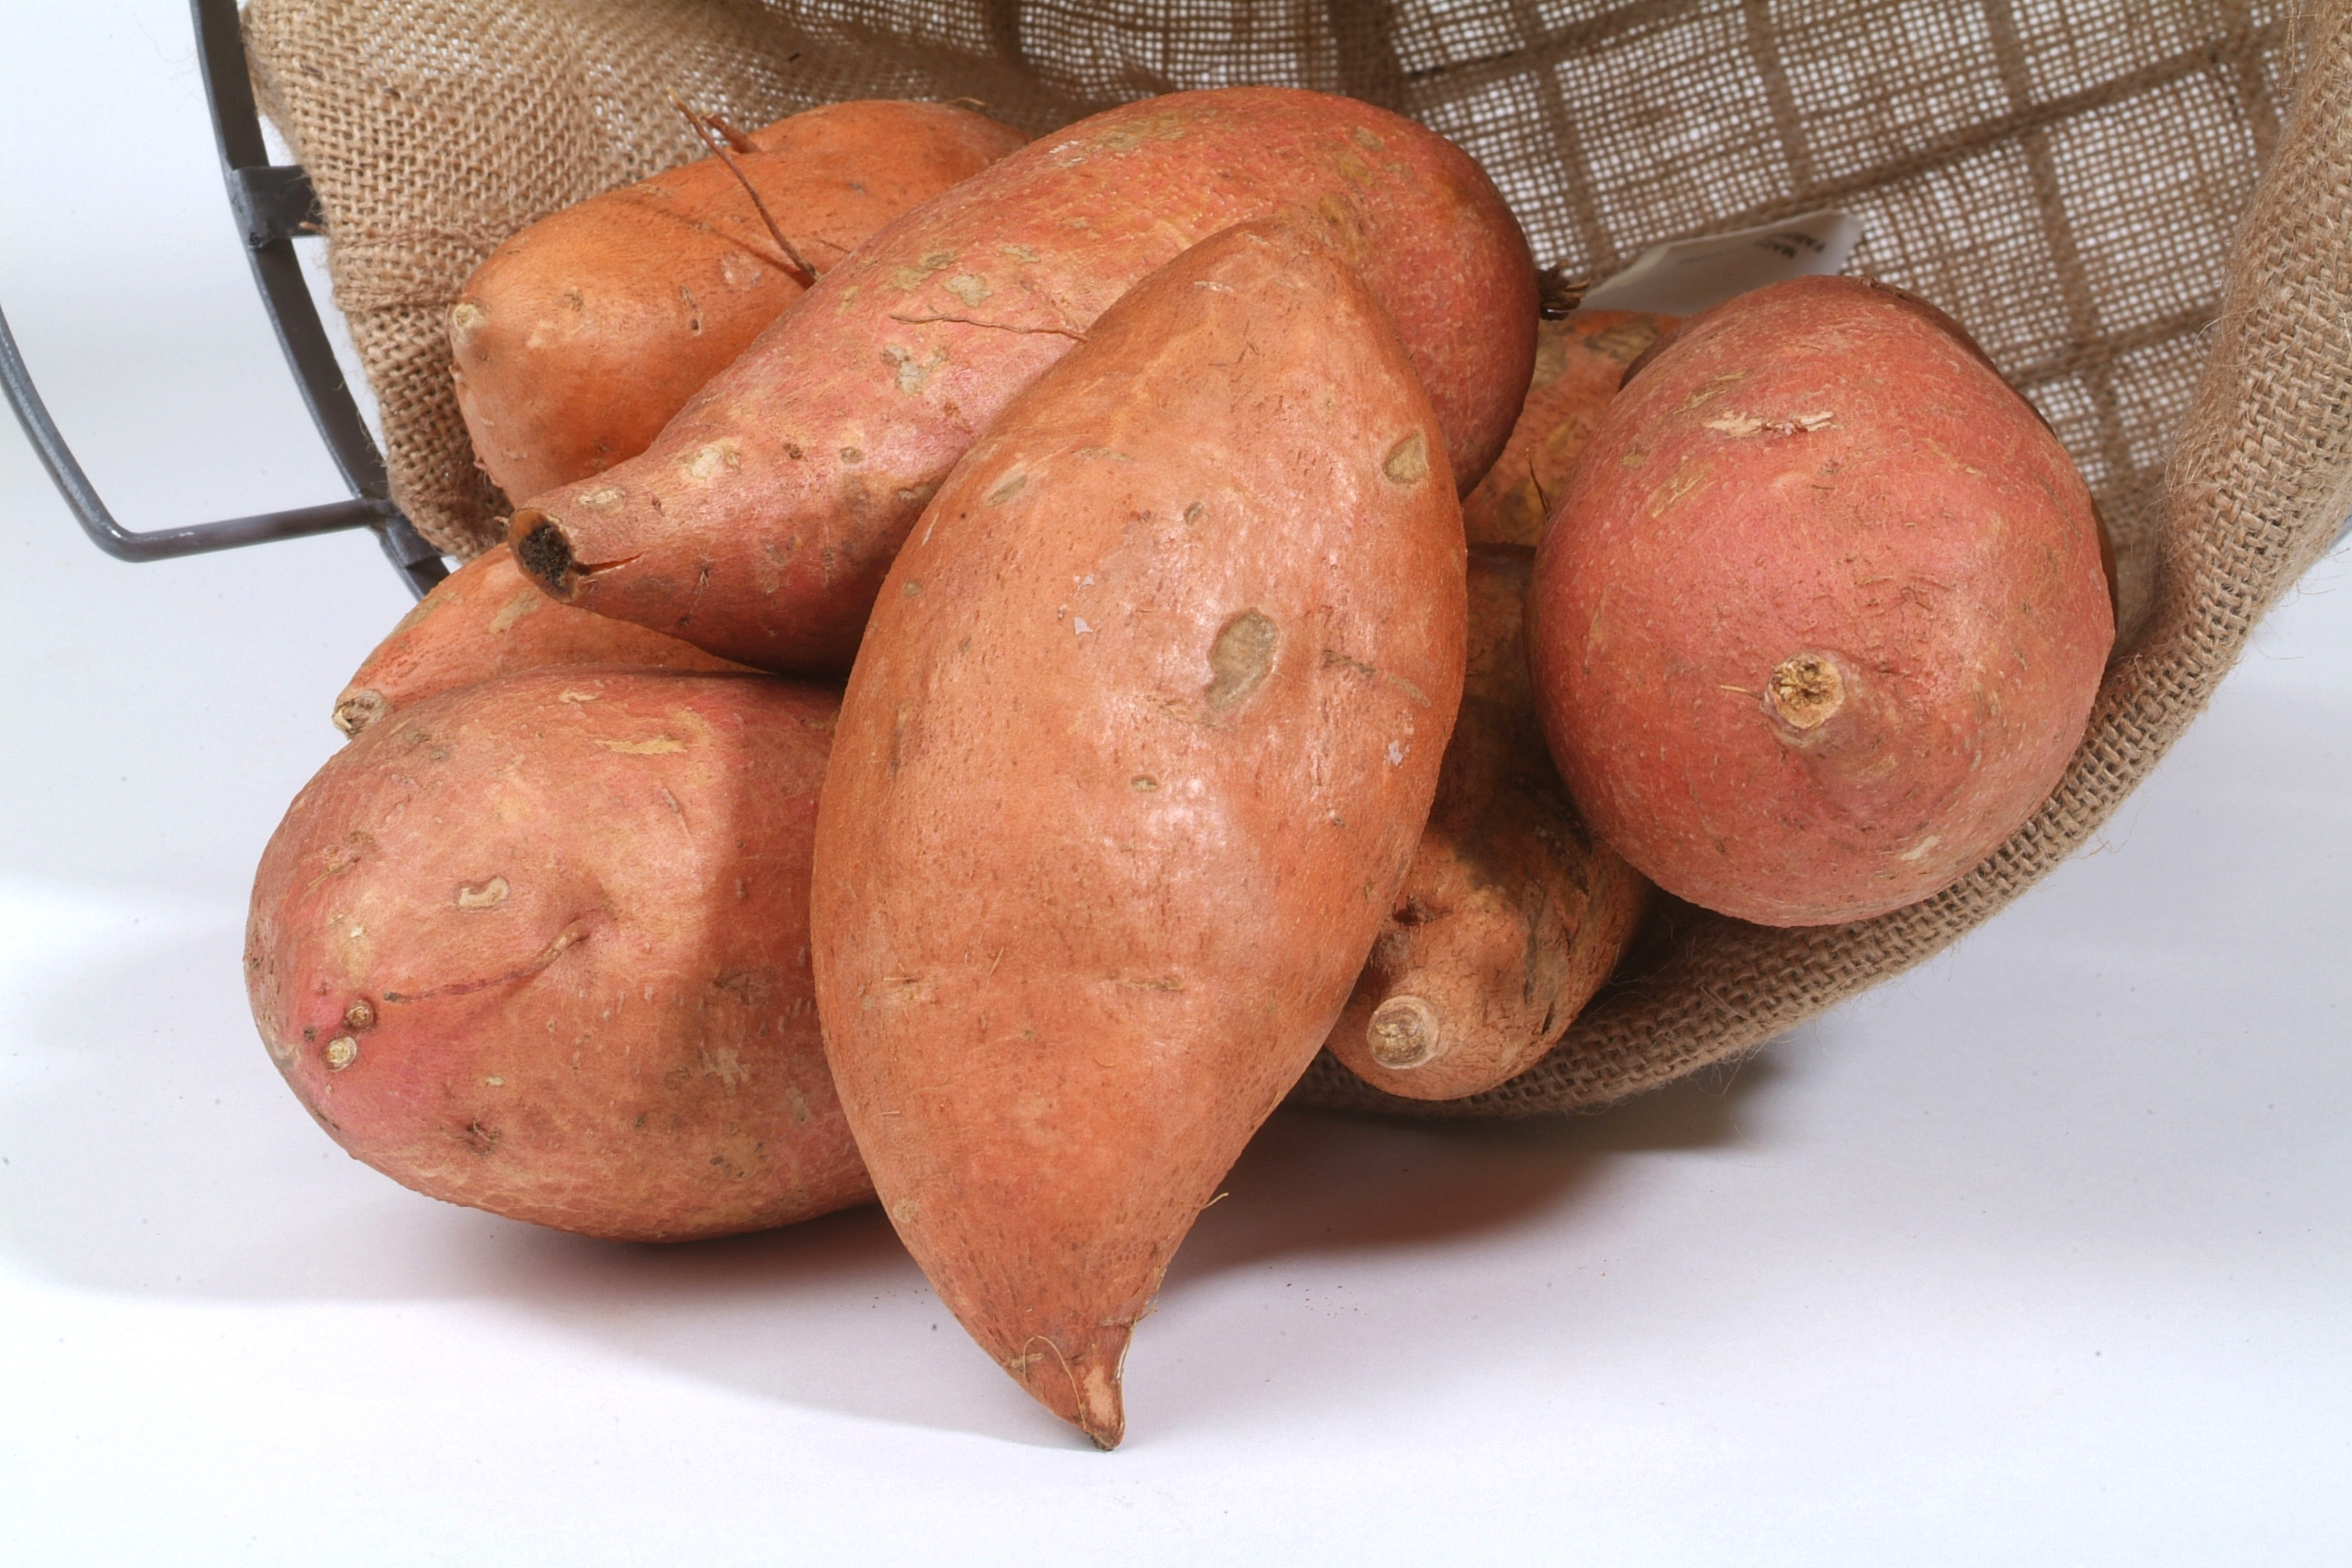 Sweet potato field day set for Aug. 31 at Chase